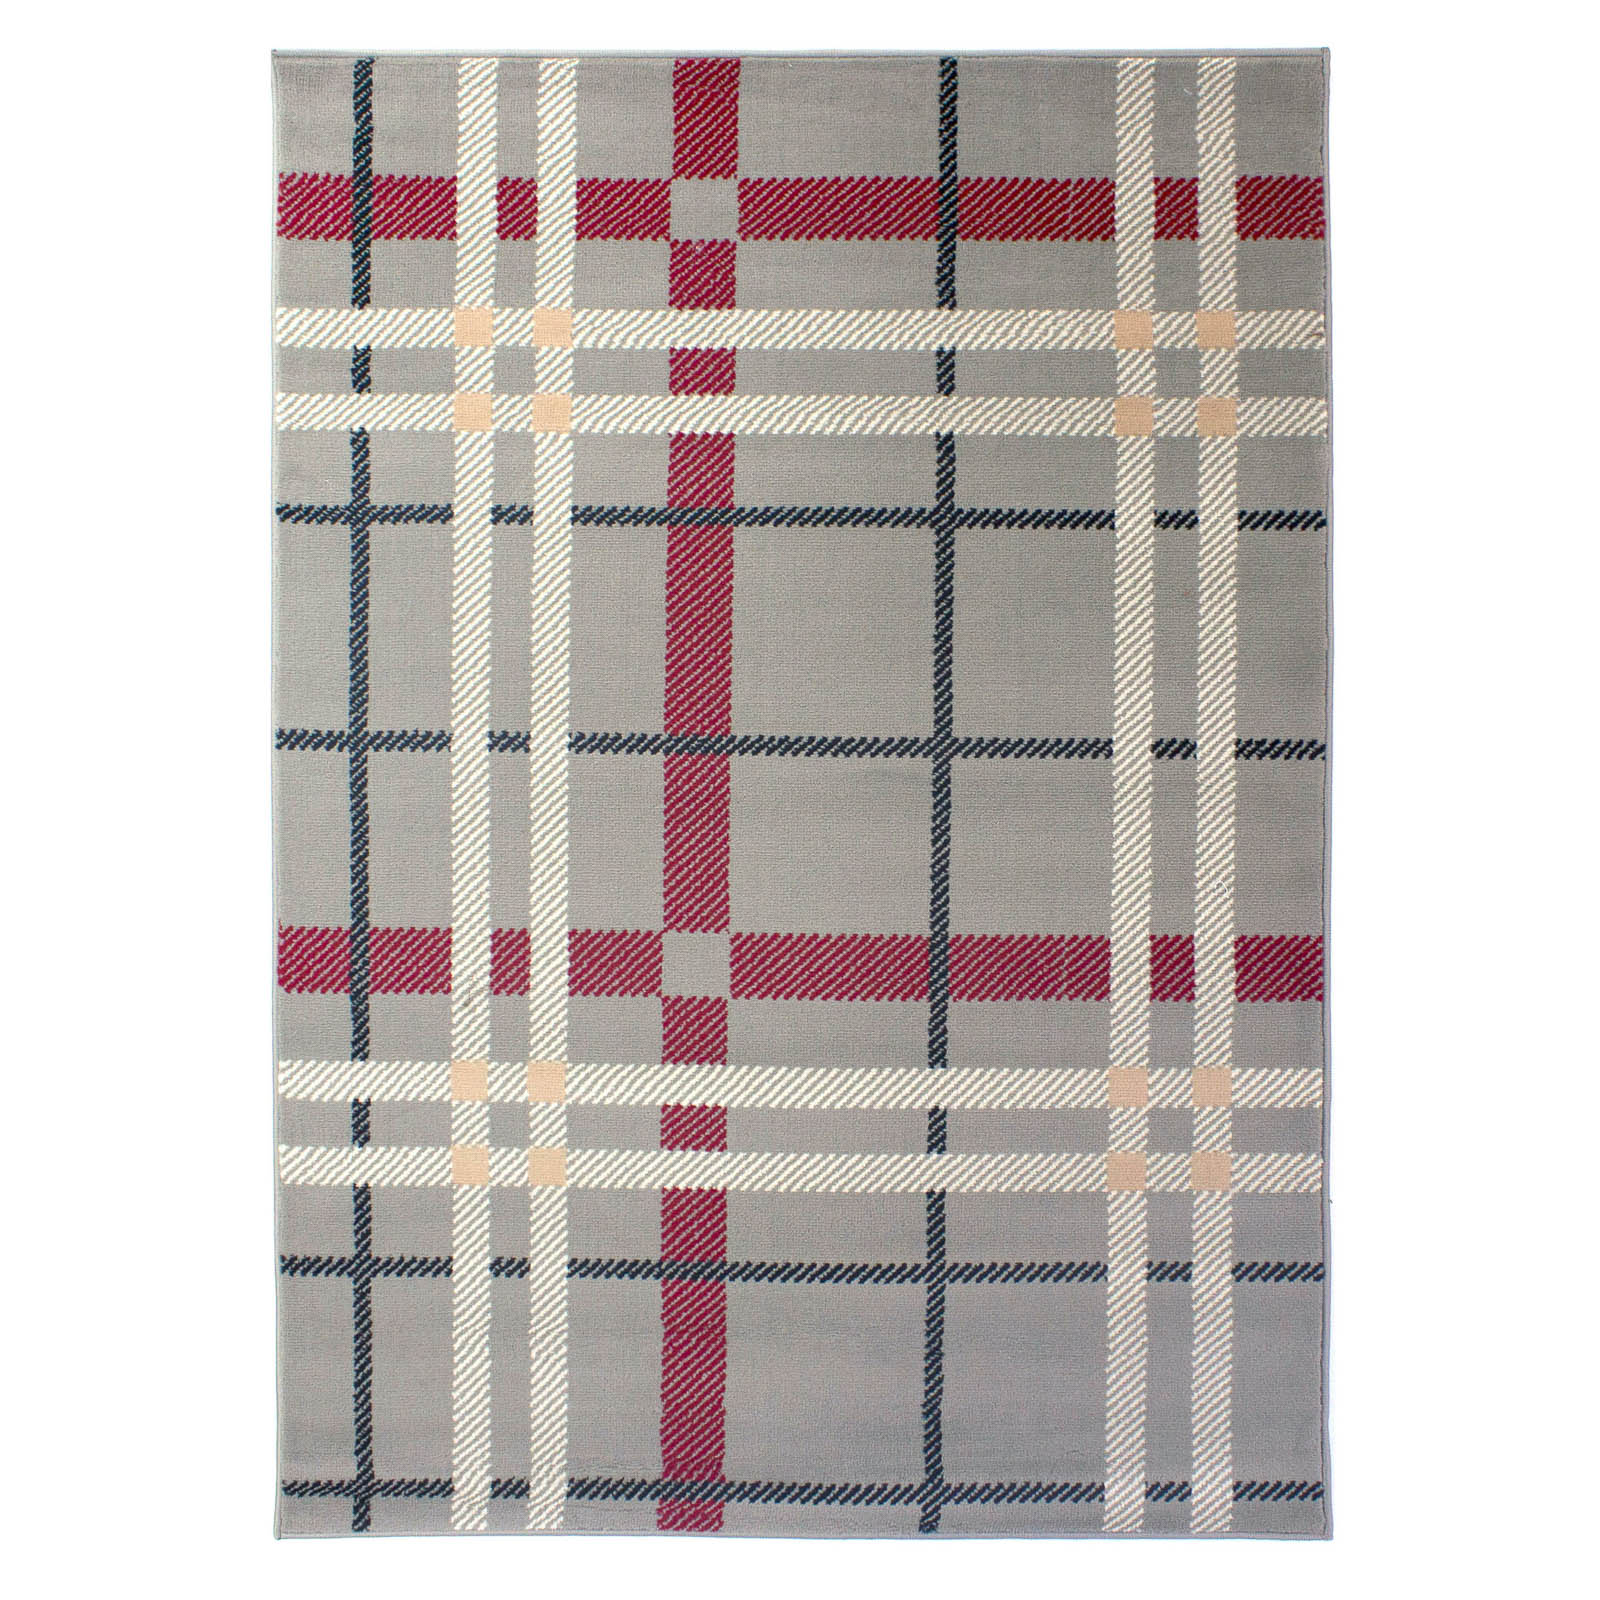 Plaid Rug: Element Plaid Rugs In Grey